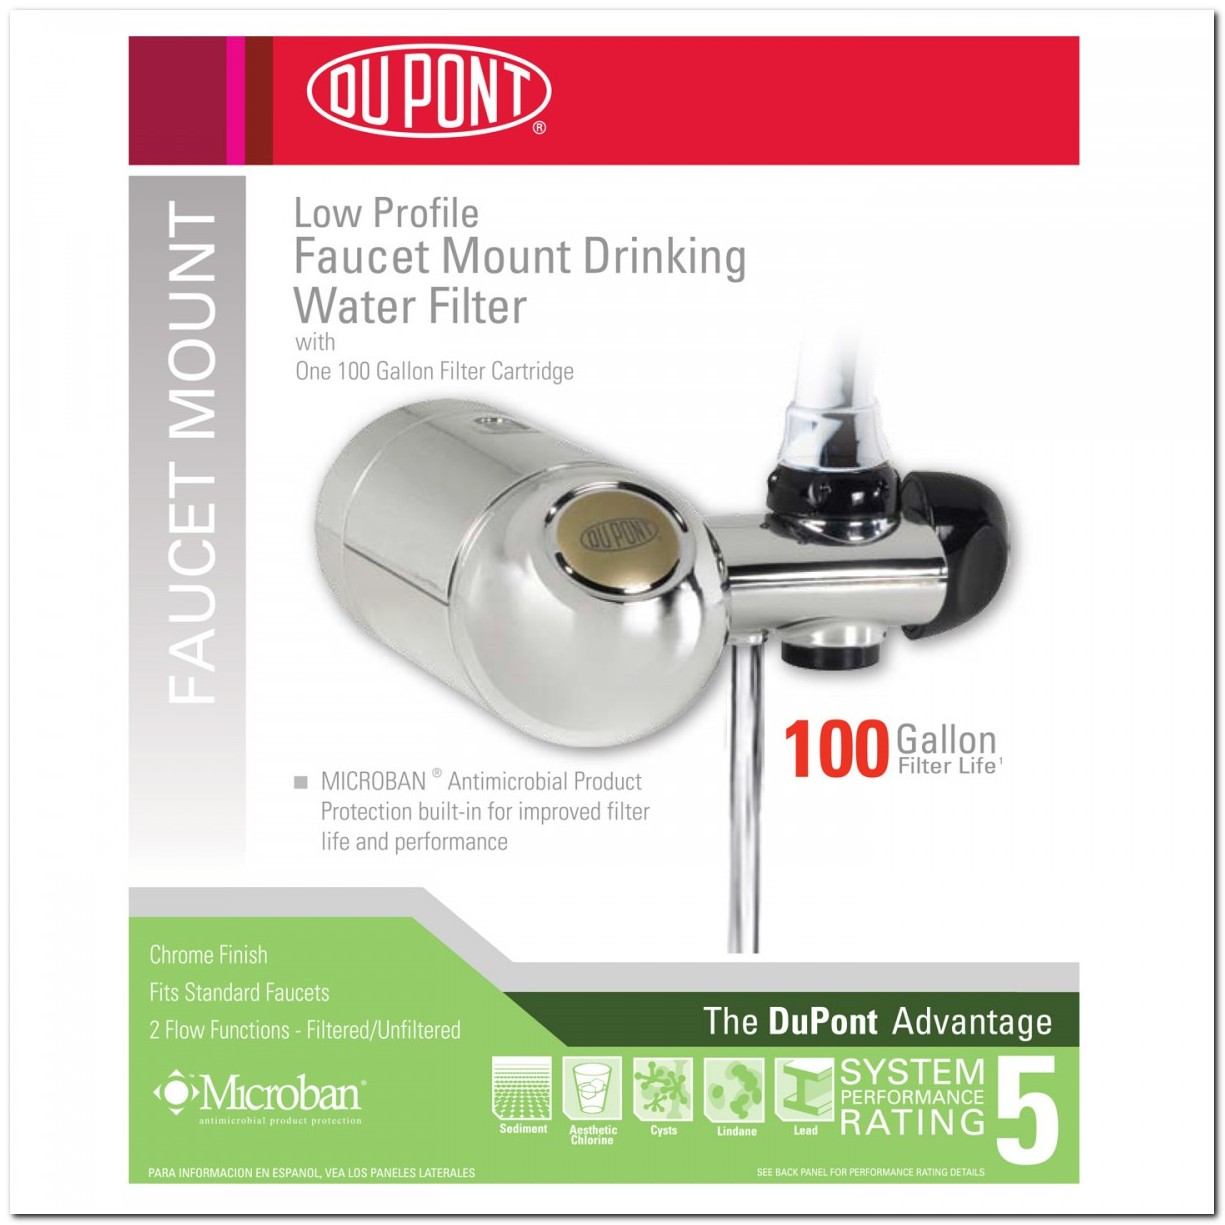 Faucet Mount Drinking Water Filter